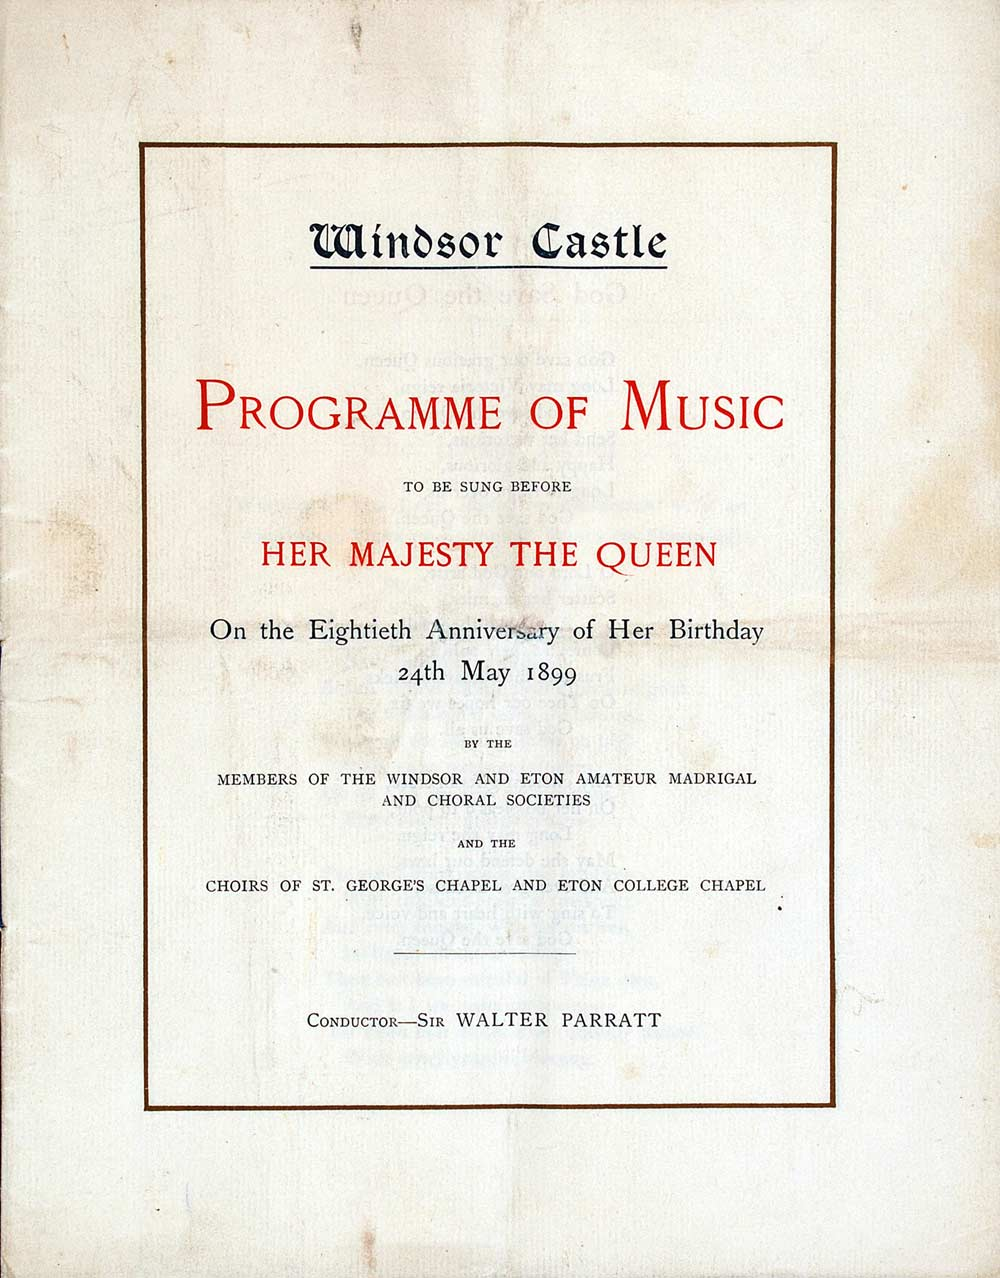 Programme of music to be sung before Her Majesty the Queen on the Eightieth Anniversary of Her birthday 24th May 1899. London: Windsor Castle, [1899].